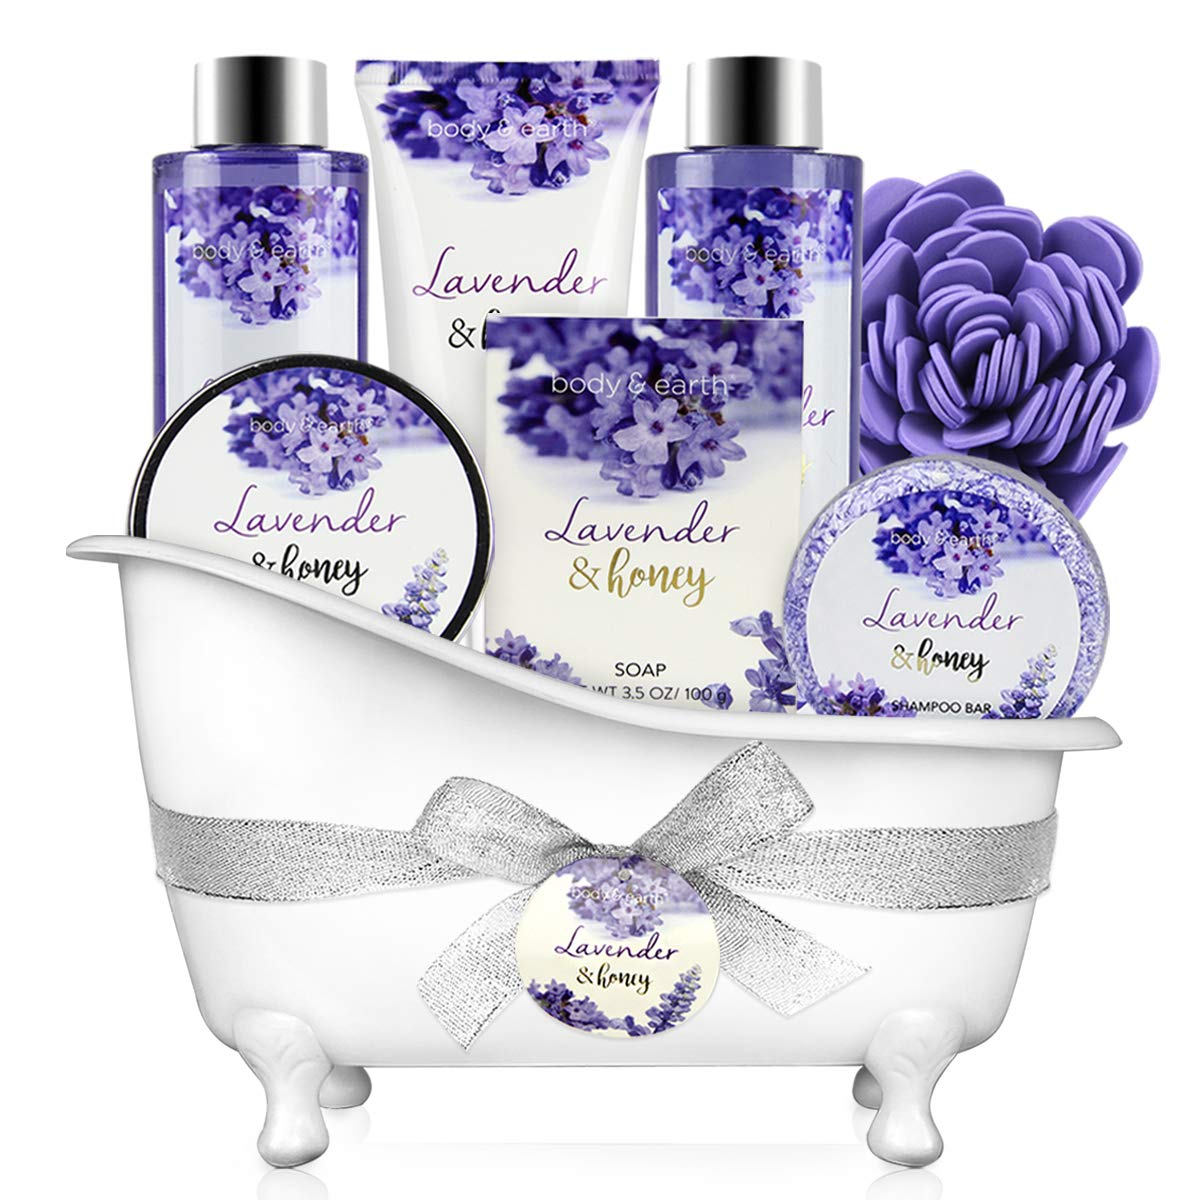 Bath and Body Gift Set - Body & Earth 8 Pcs Bath Spa Gift Sets Lavender&Honey Scent, Includes Bubble Bath, Shower Gel, Soap, Body Lotion, Bath Salt and More, Perfect Gift Basket for Home Relaxation by BODY & EARTH